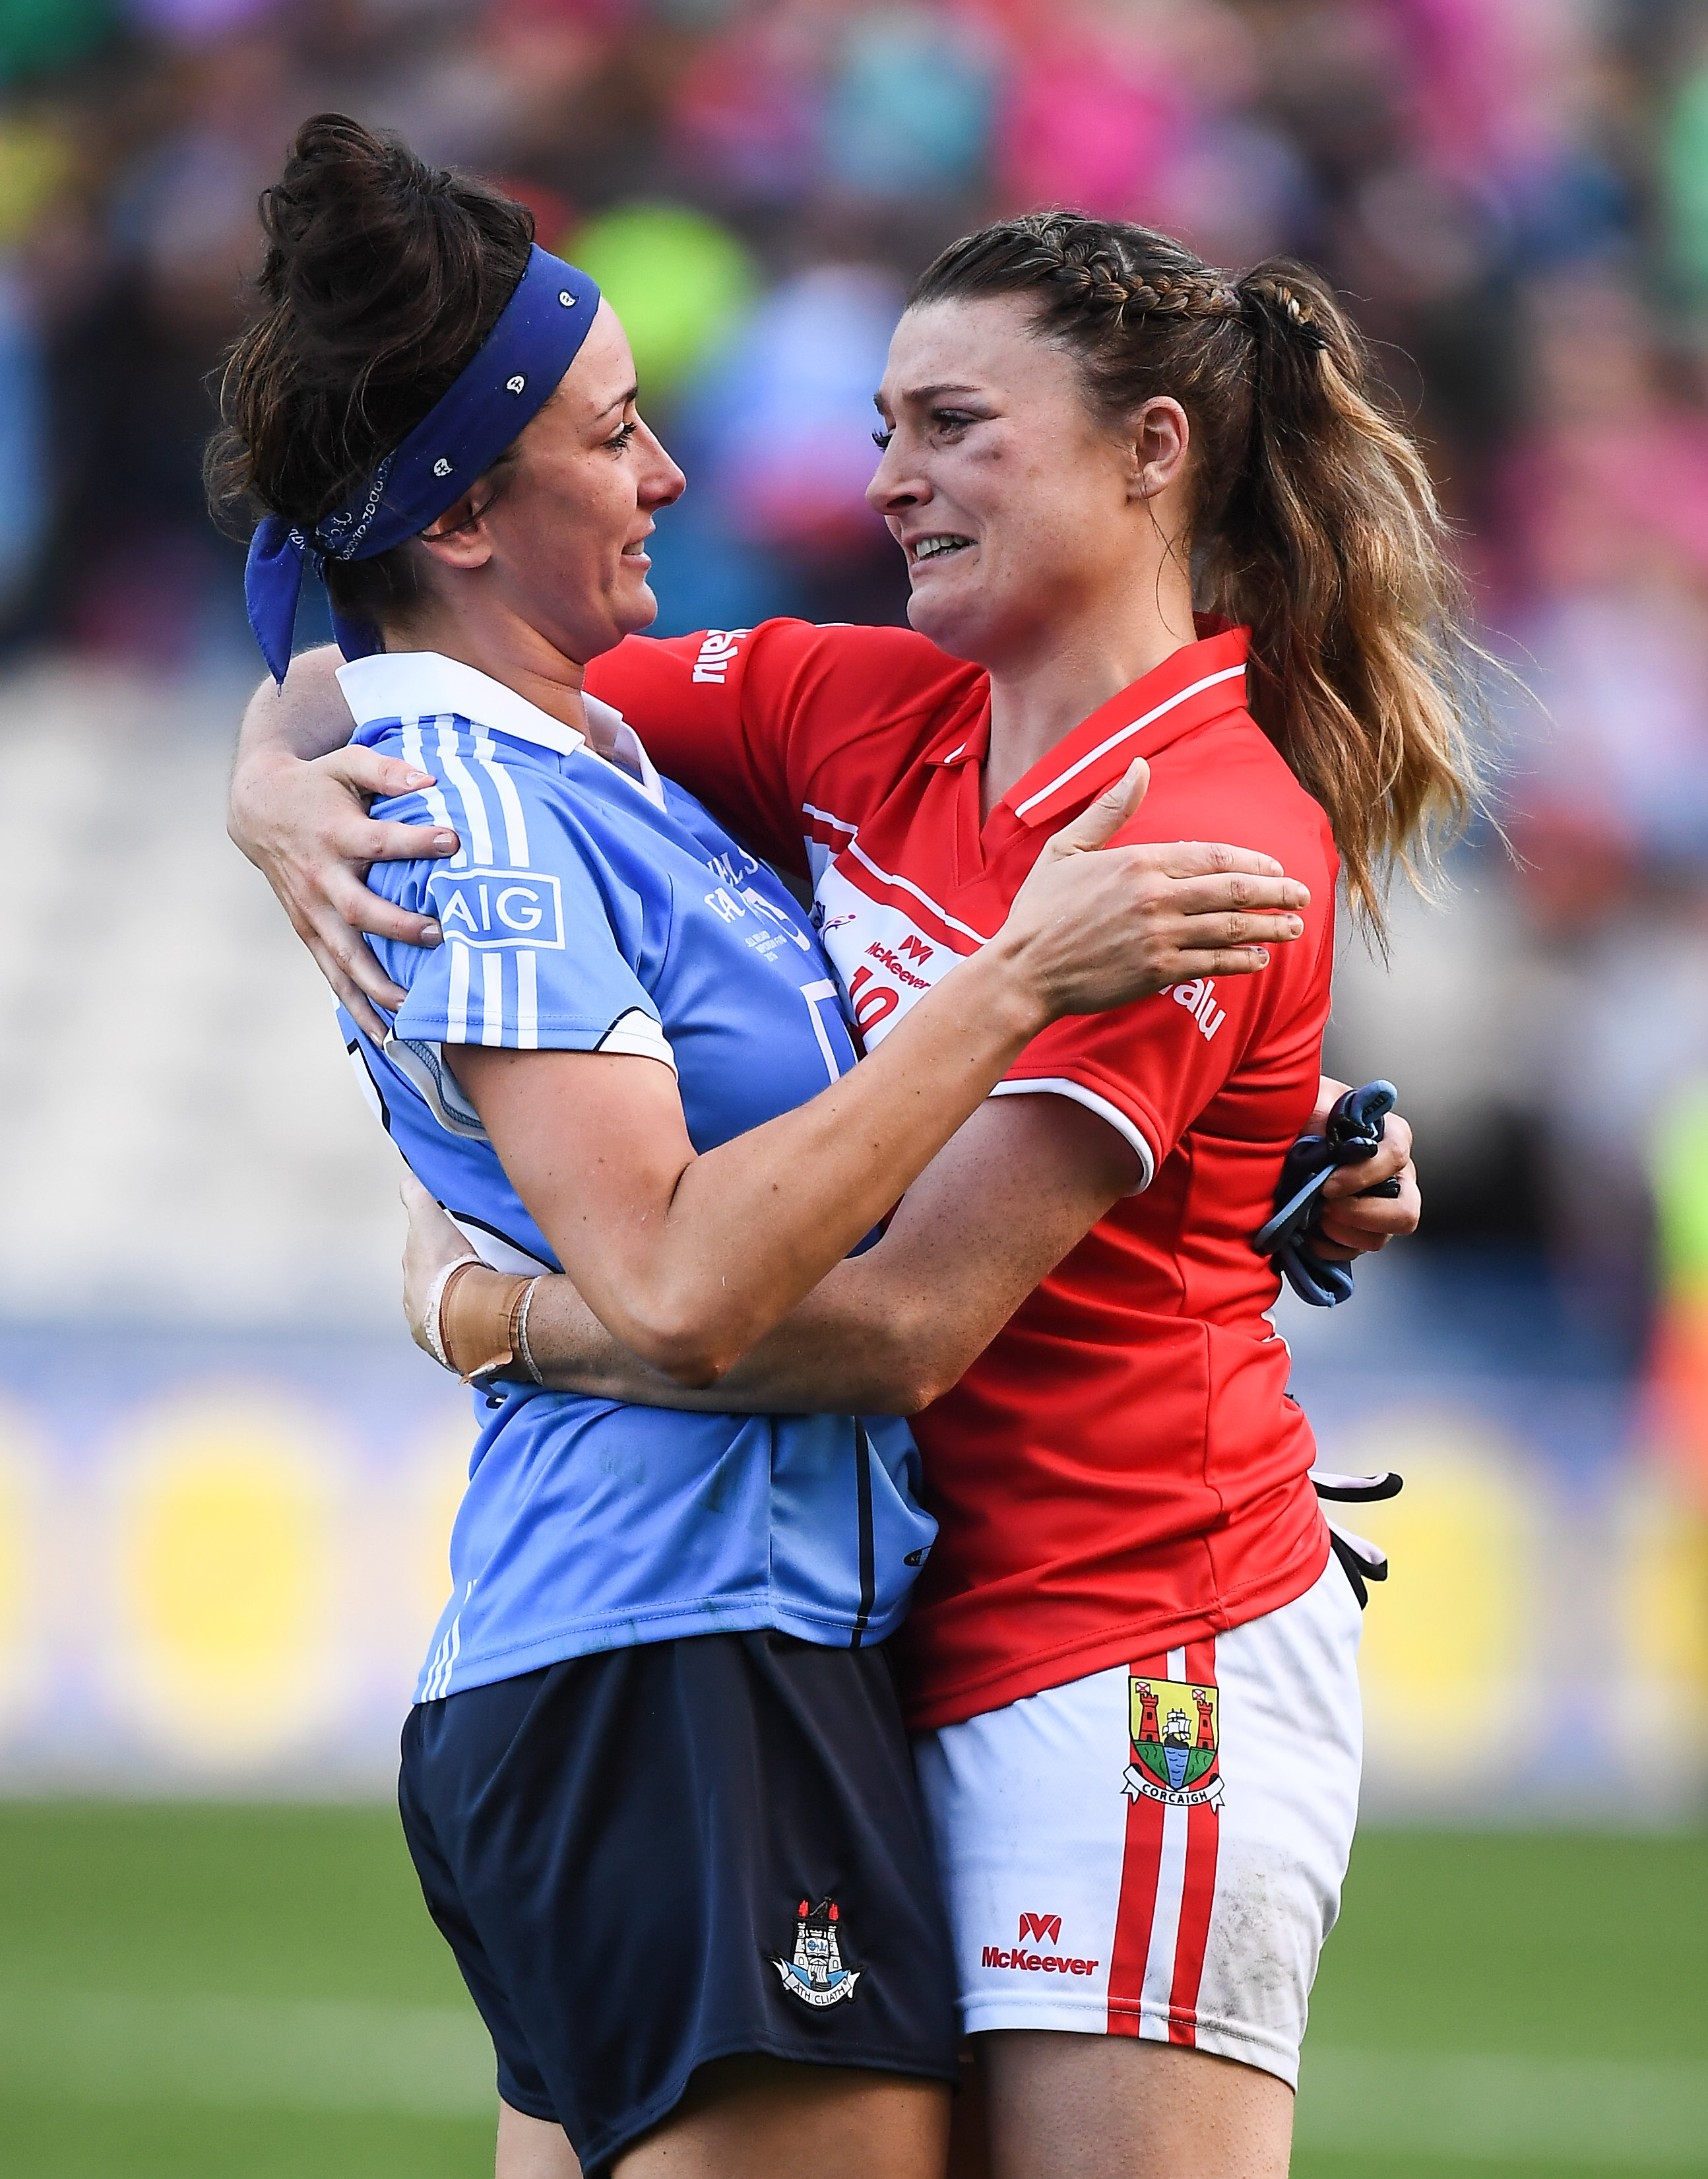 25 September 2016; Annie Walsh, right, of Cork consoles Niamh McEvoy of Dublin after after the Ladies Football All-Ireland Senior Football Championship Final match between Cork and Dublin at Croke Park in Dublin. Photo by Brendan Moran/Sportsfile